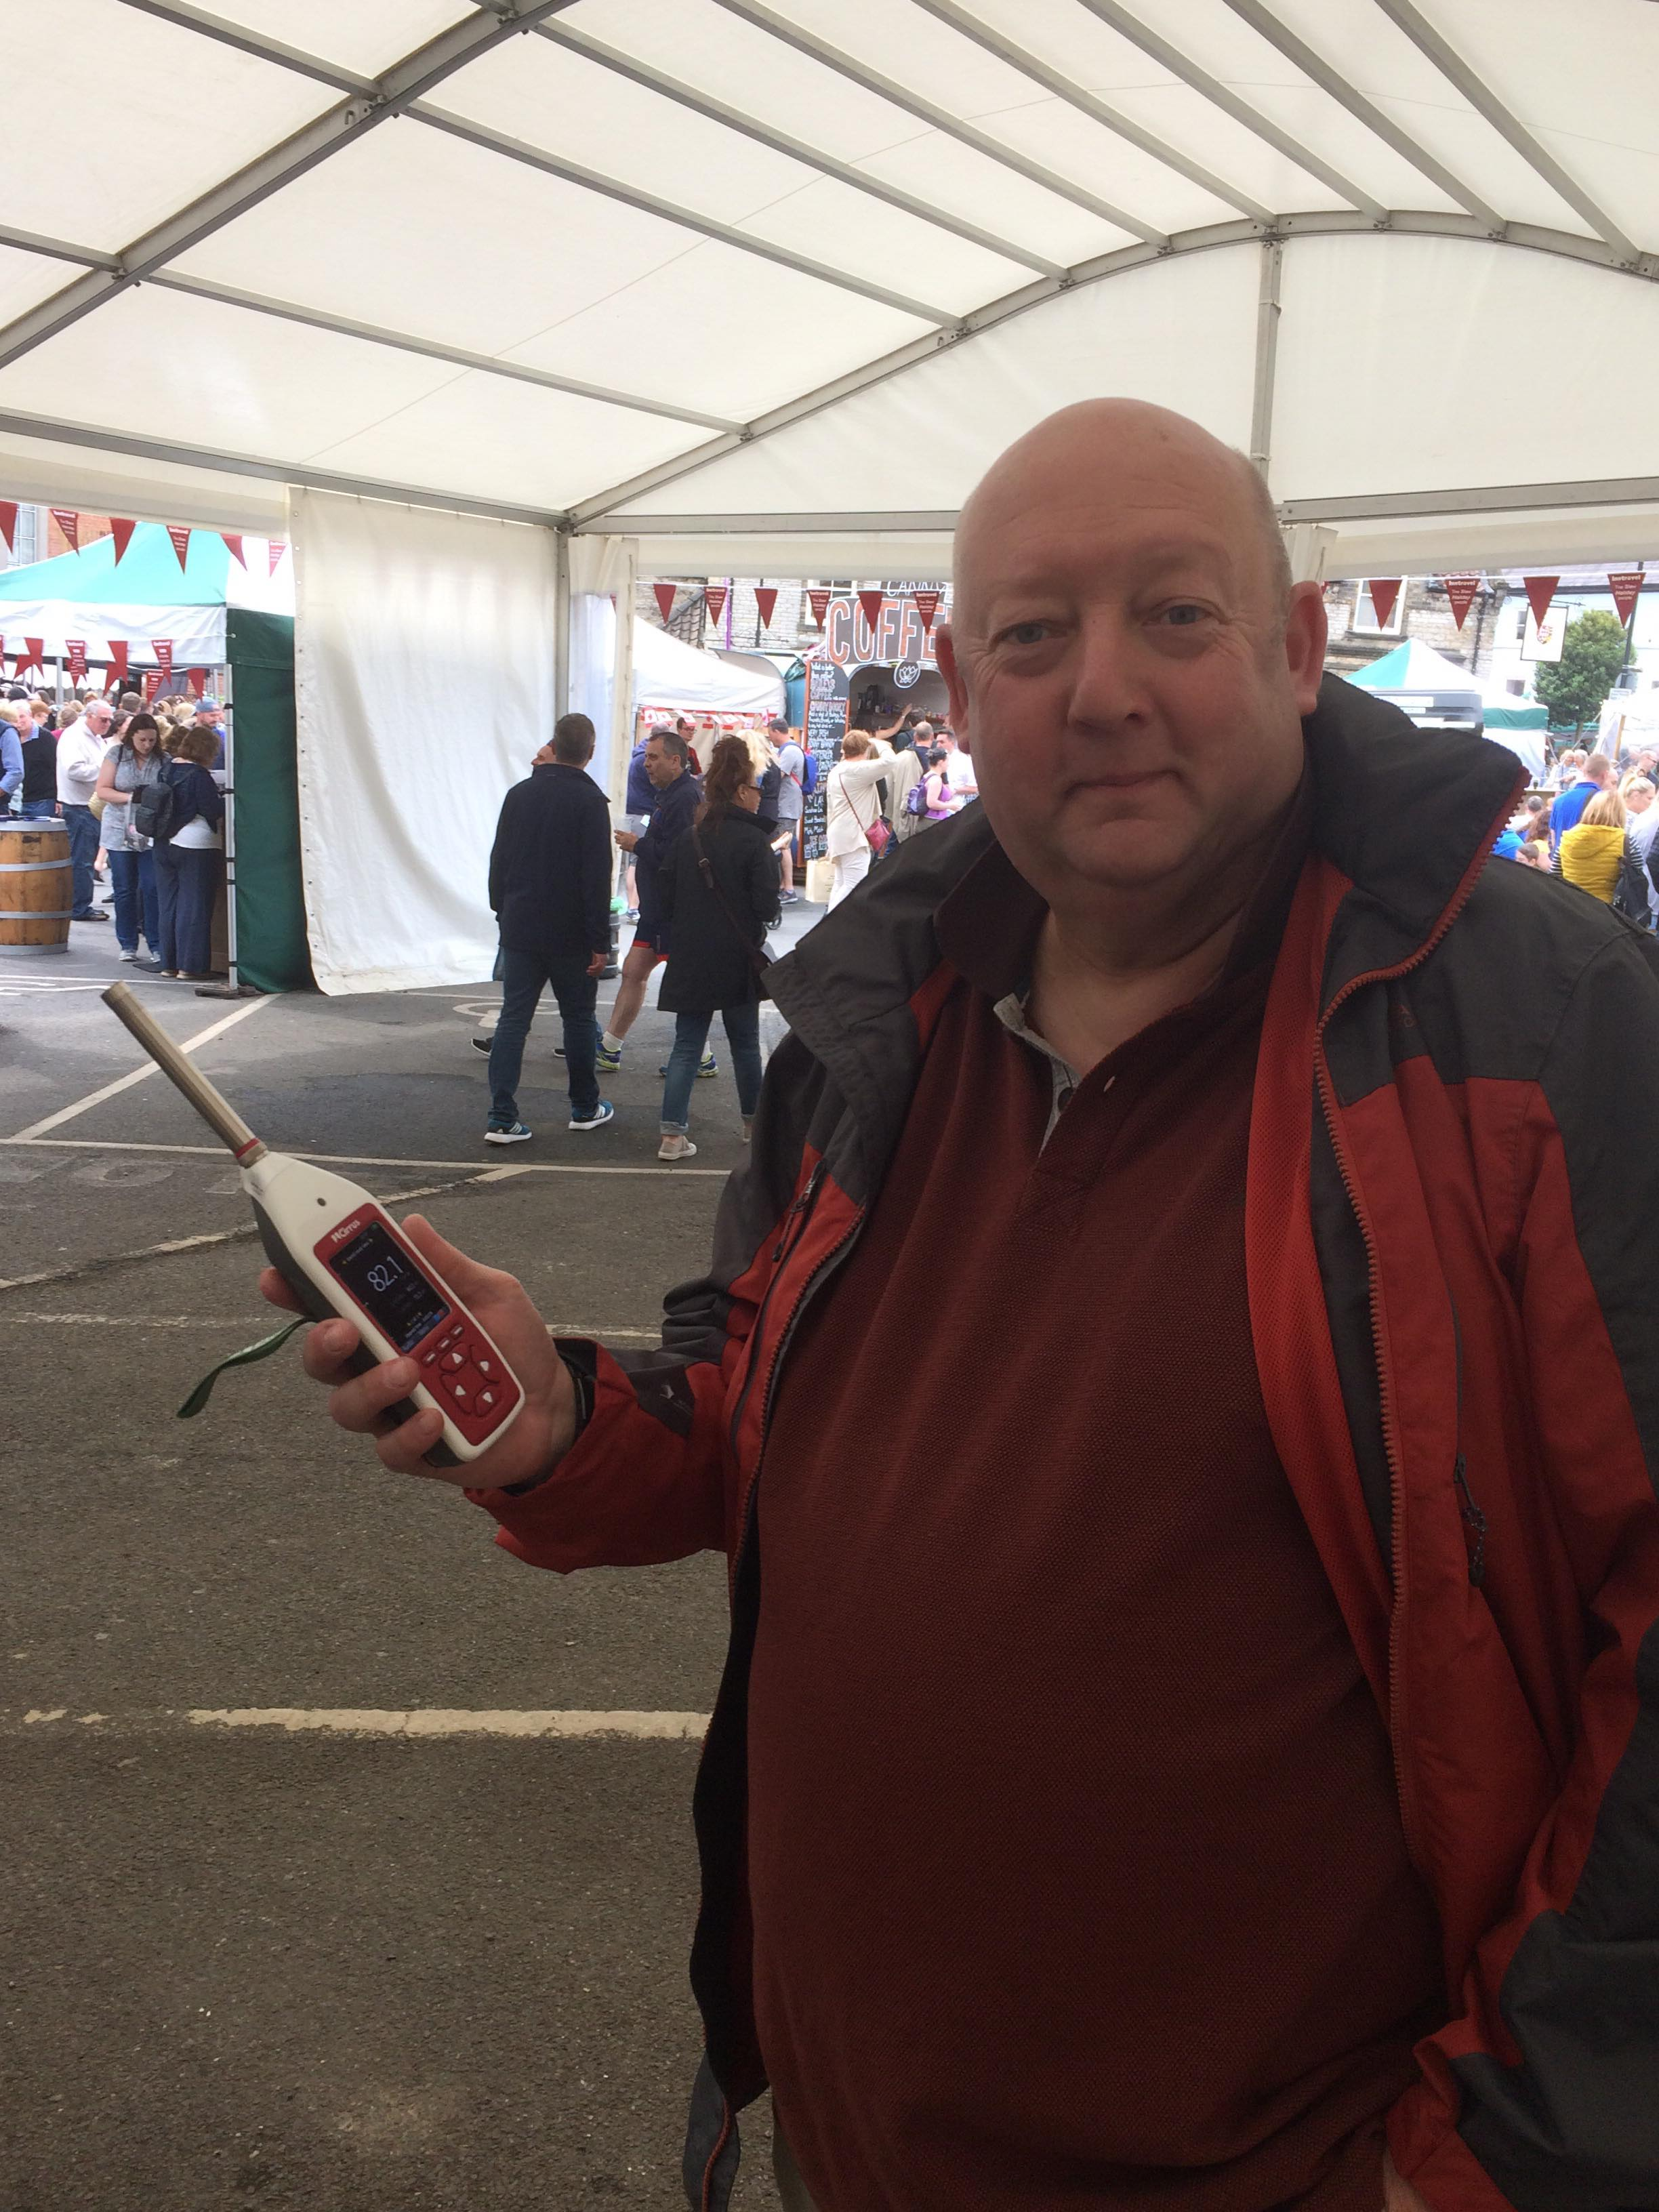 An image of sales manager Martin Ellison with an Optimus sound level meter at the Malton Food Festival